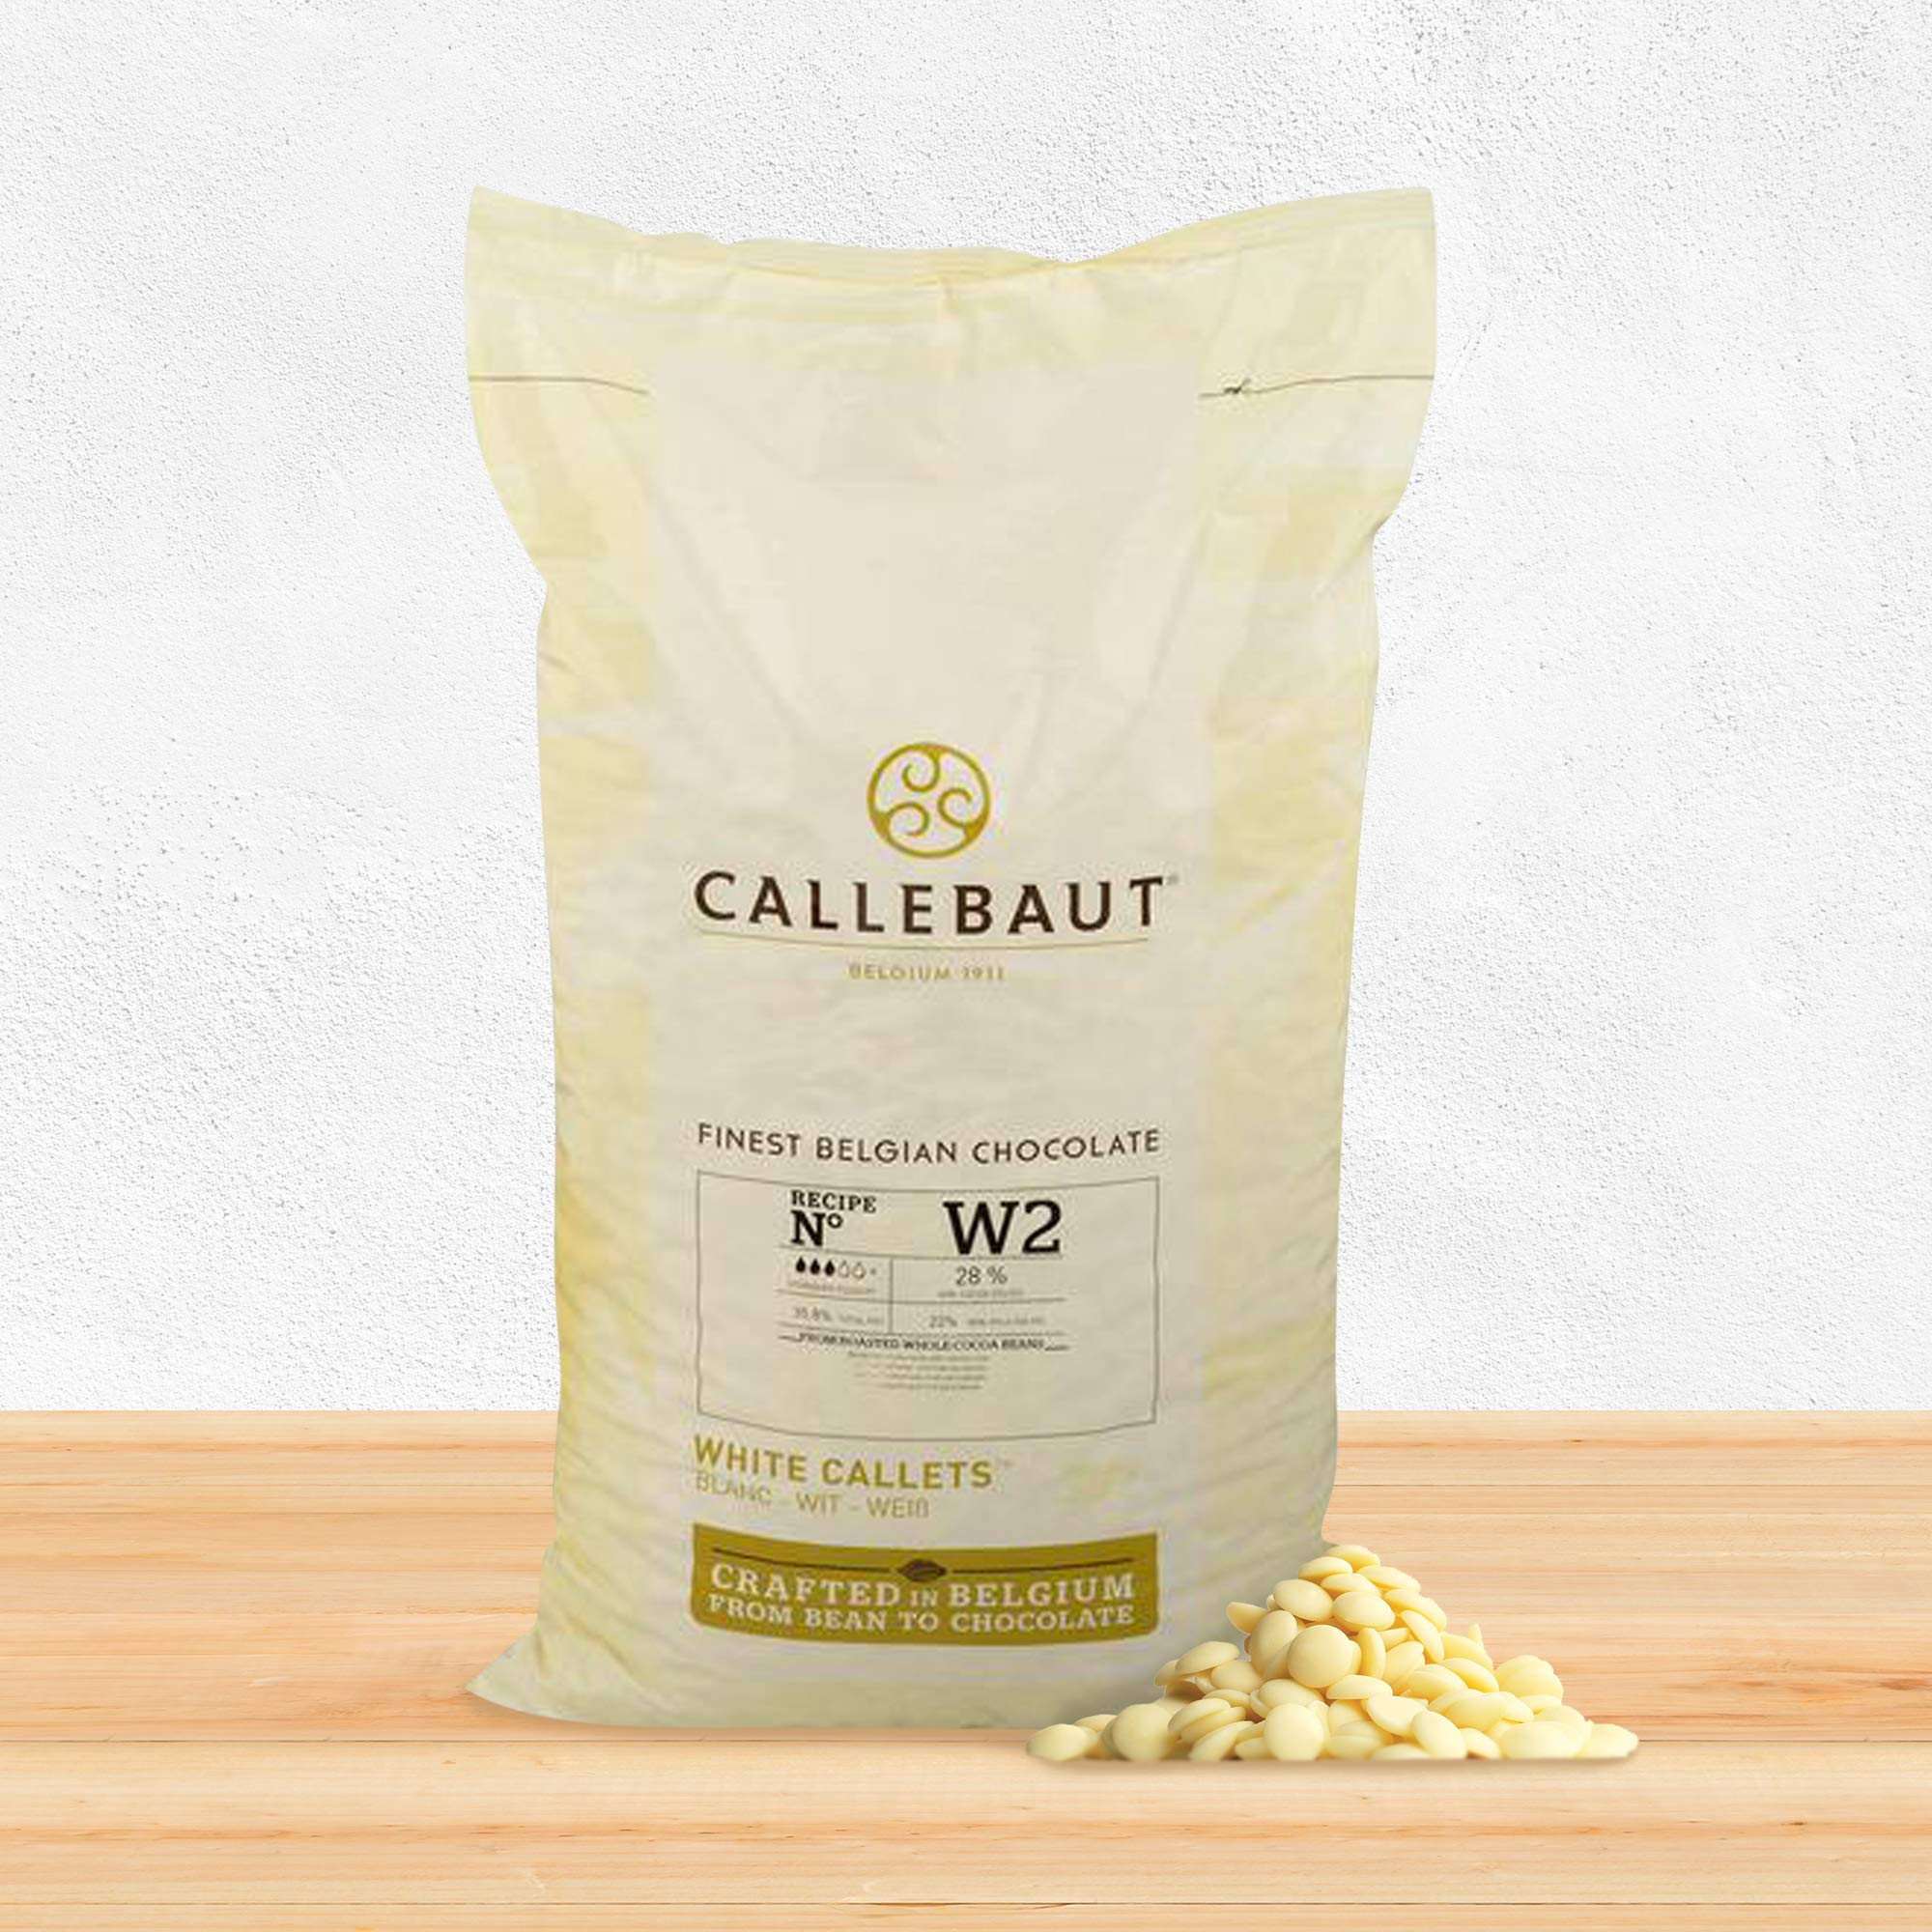 Callebaut Belgian White Baking Chocolate Callets - 29.5% Cocoa Butter, 0% Fat Free Cocoa, 6.3% Milk Fat, 16.7% Fat Free Milk - Good For Cakes, Mousse, Truffle, Fillings & Dipping - 22 Lbs by Callebaut (Image #4)